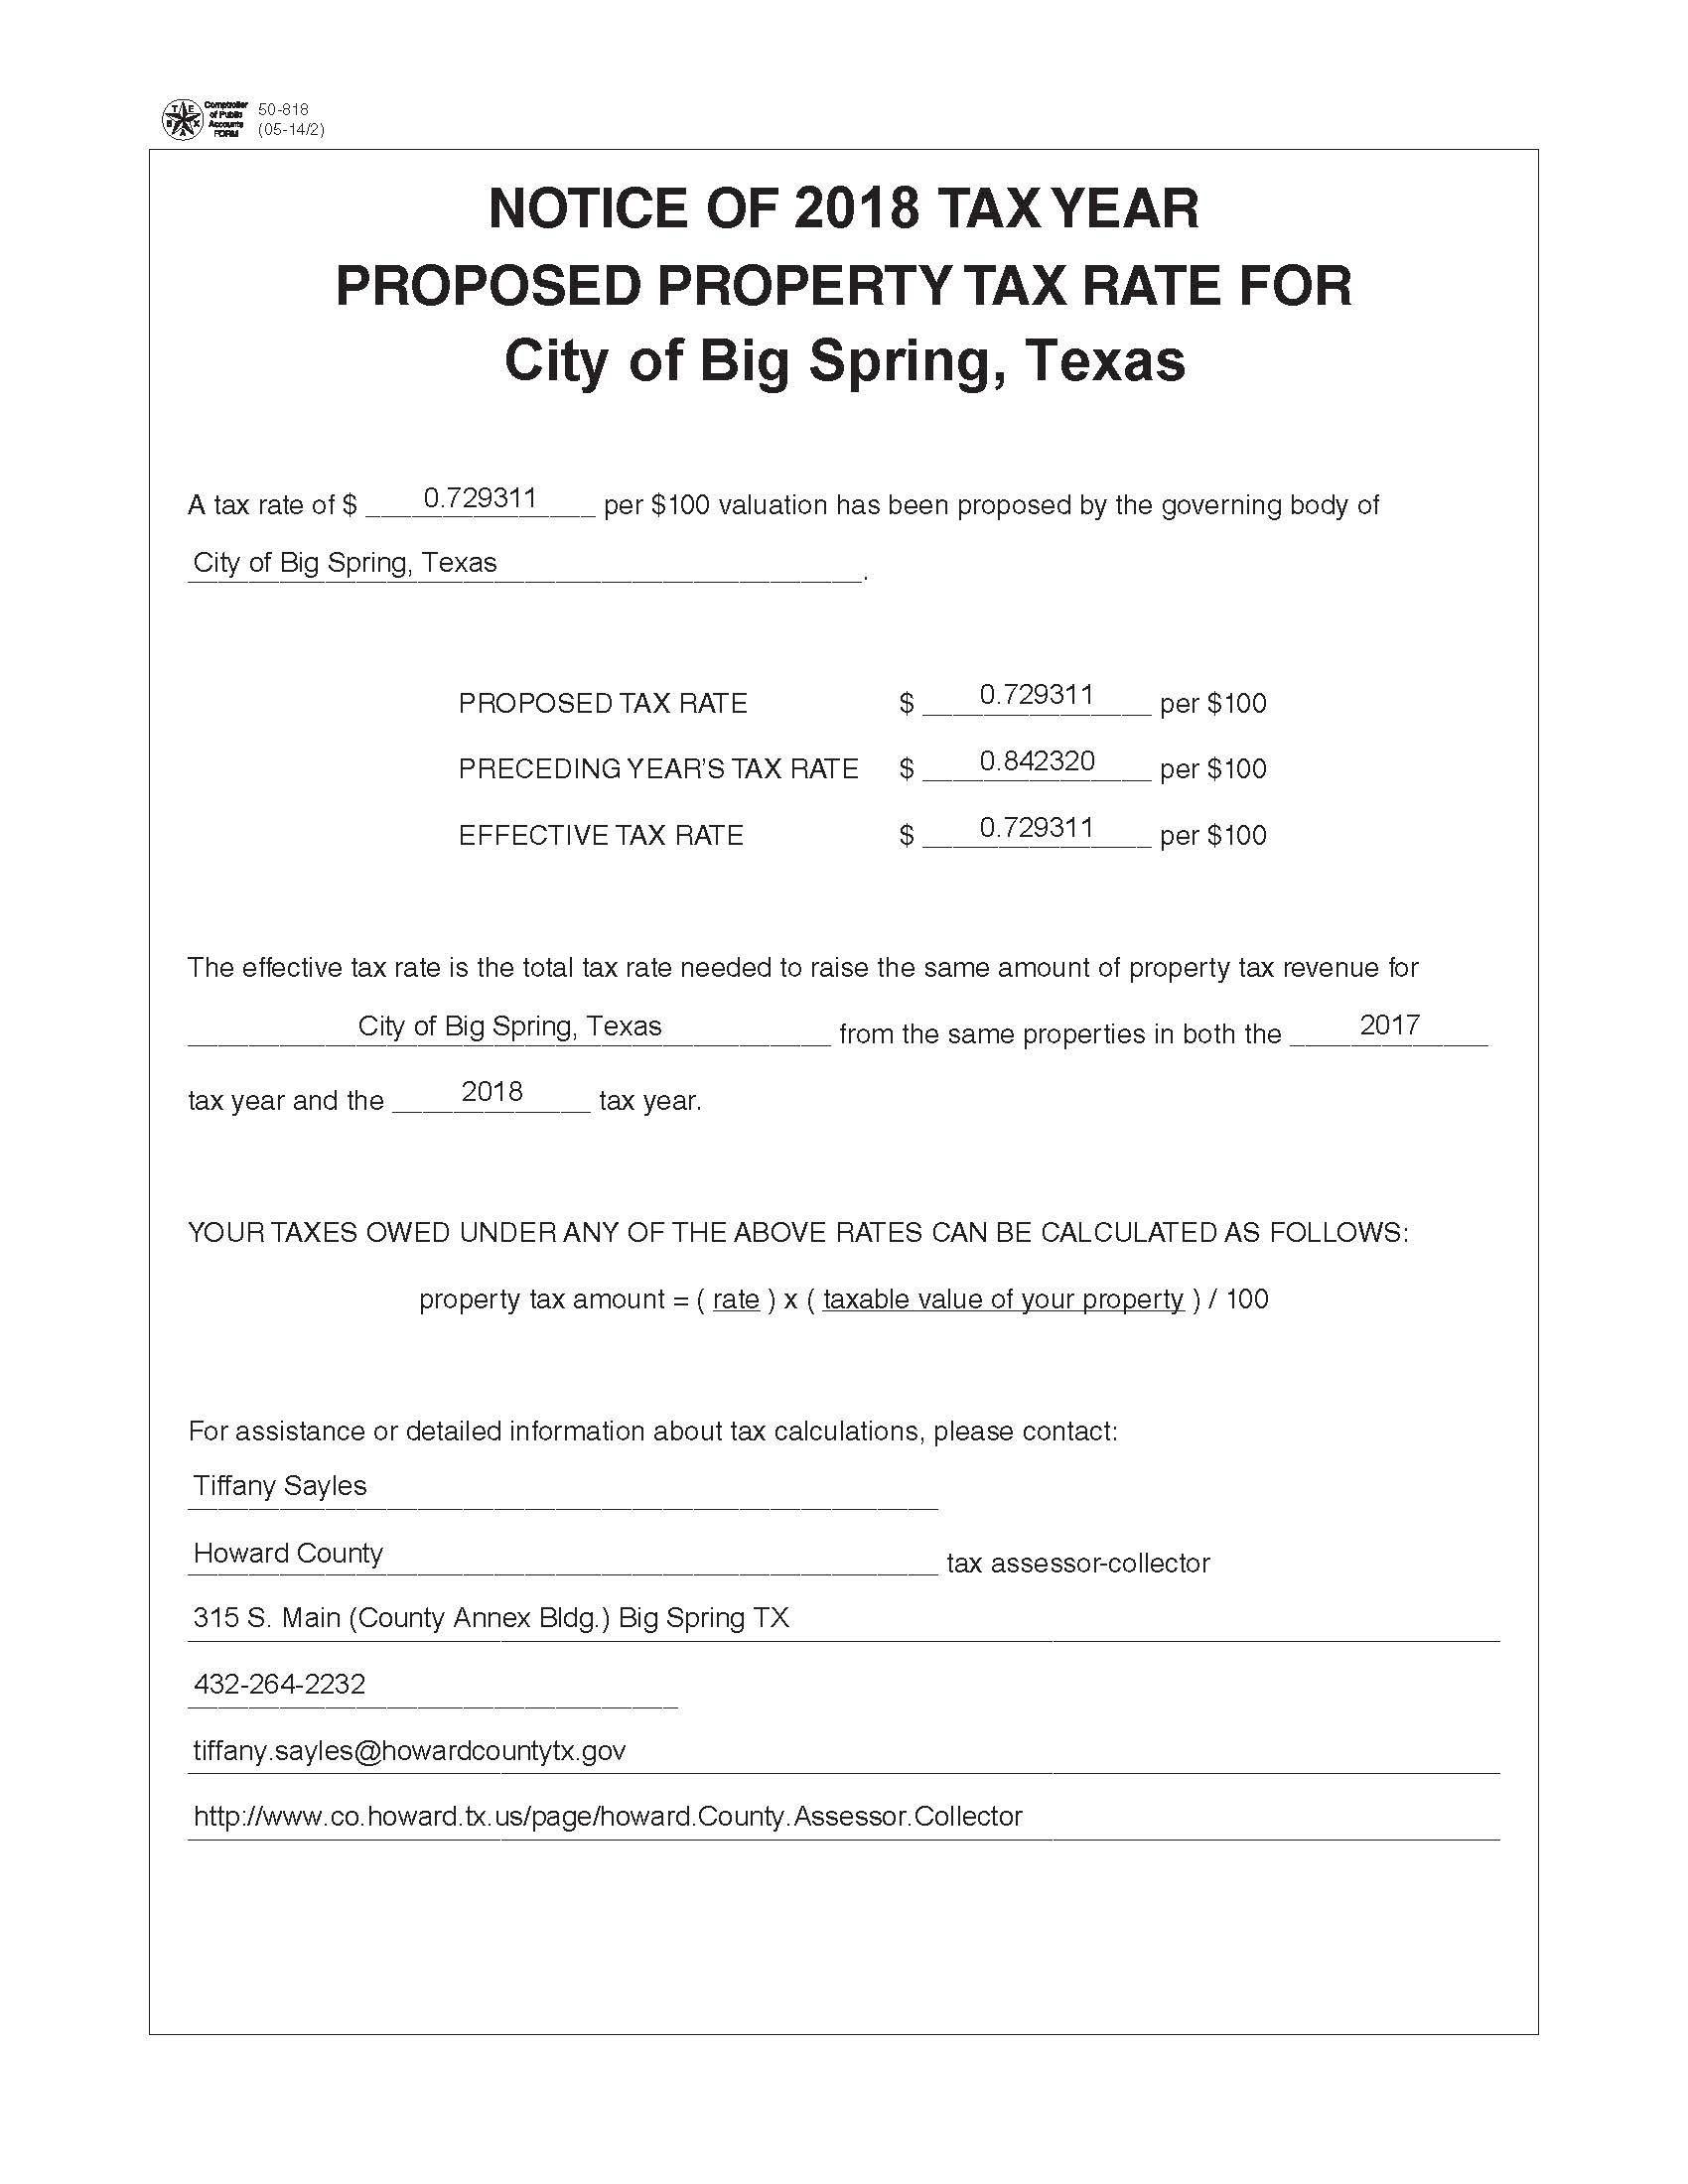 2018 Proposed Tax Rate Notice